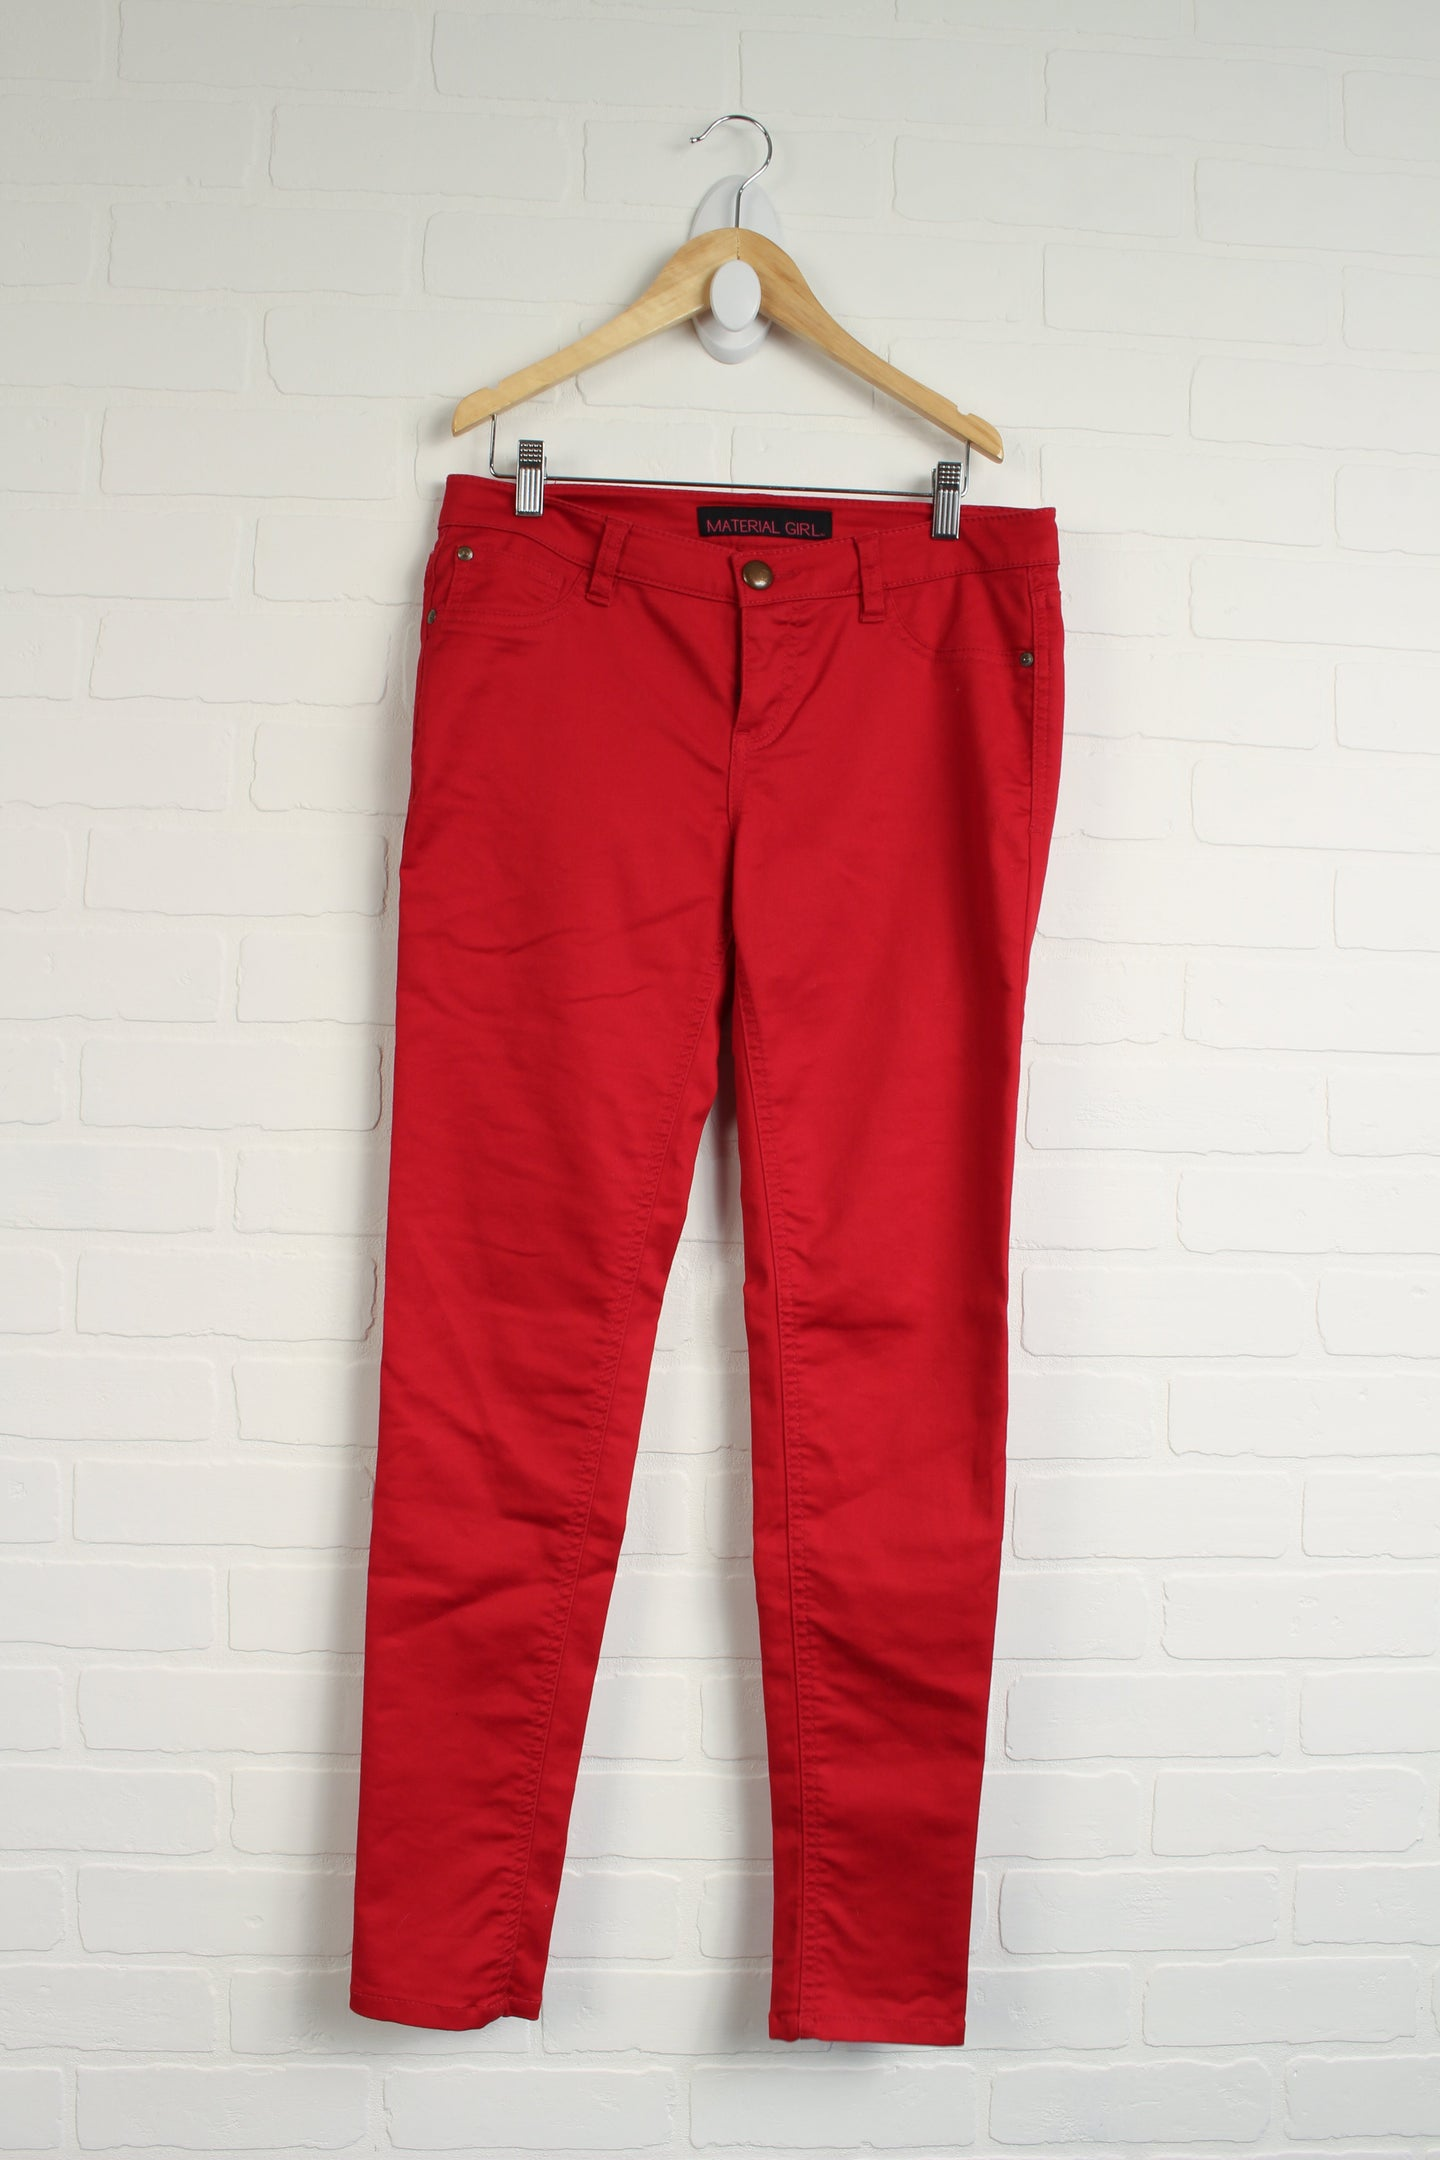 Red Skinny Jeans (Women's Size 7)